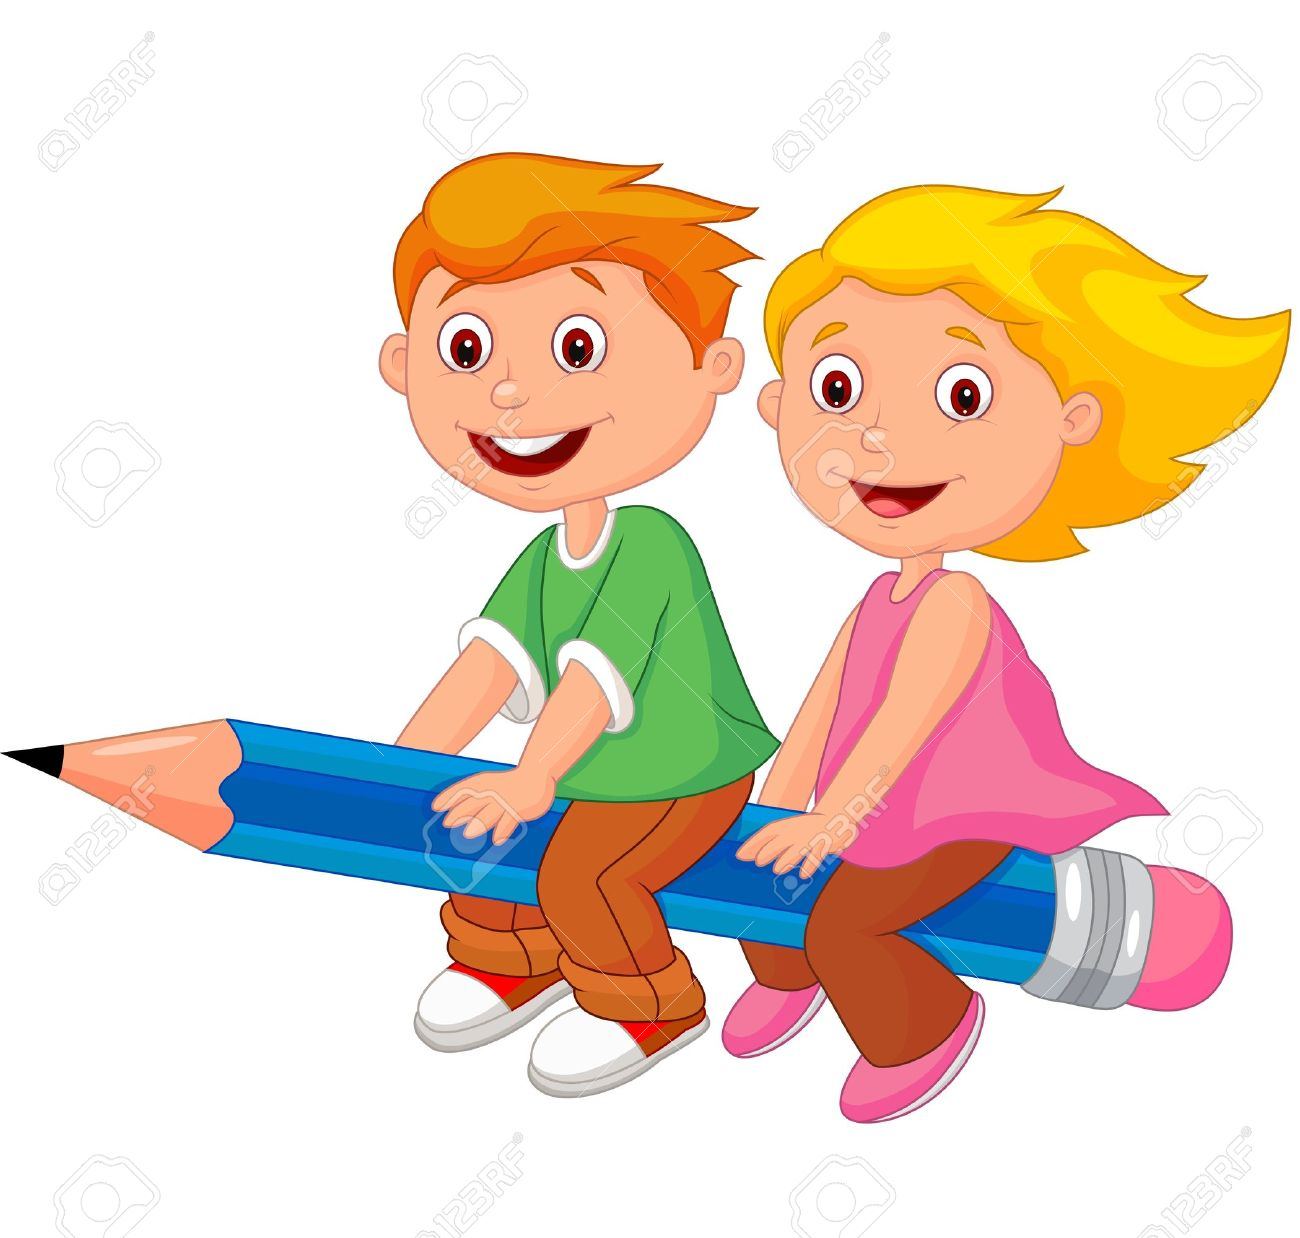 cartoon boy and flying on a pencil royalty free cliparts